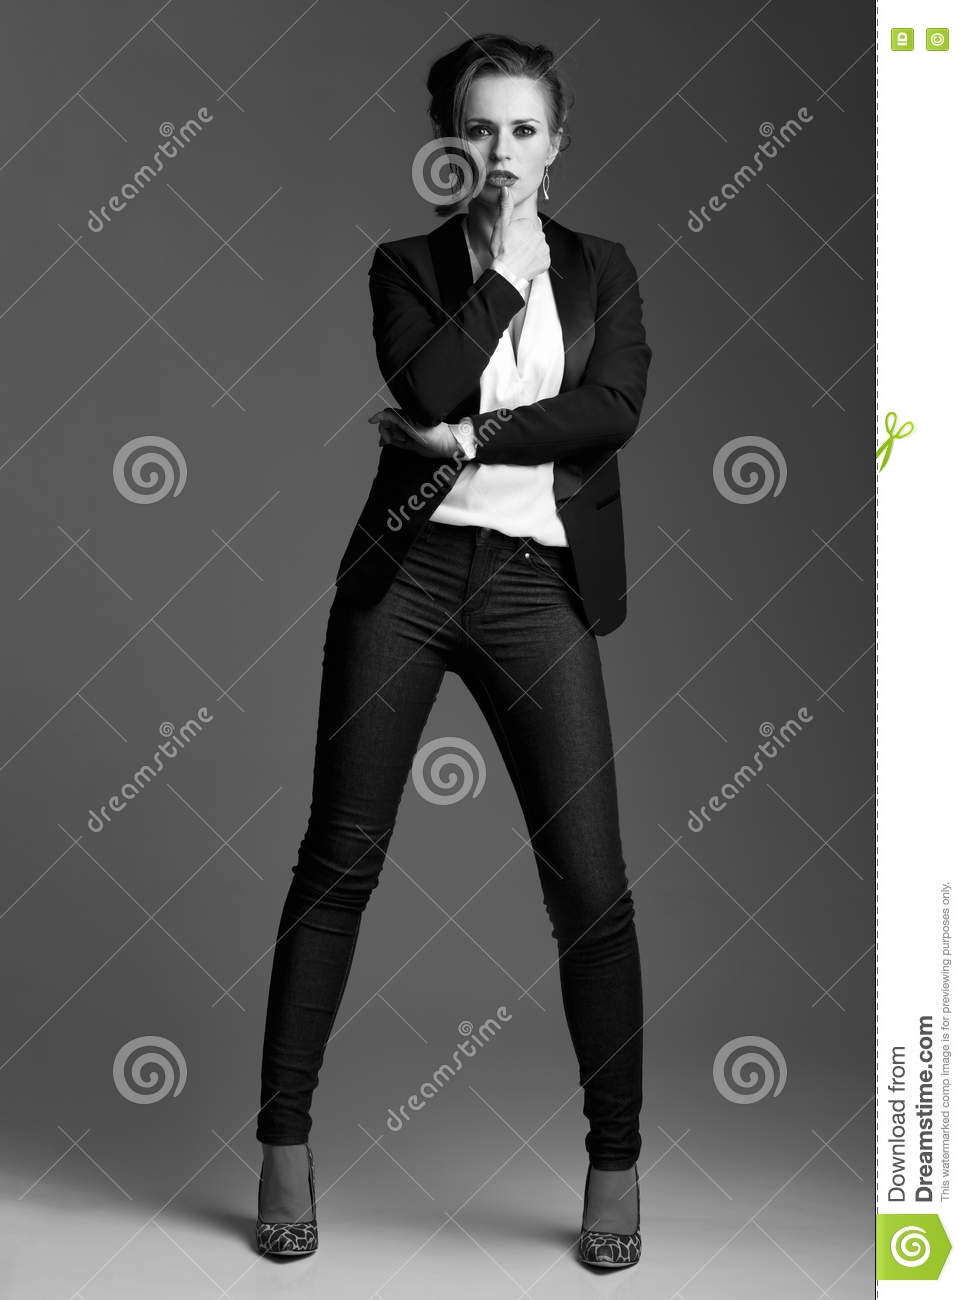 Contemporary Woman In Black And White Aesthetic Full Length Portrait Of Modern Elegant Posing Against Grey Background